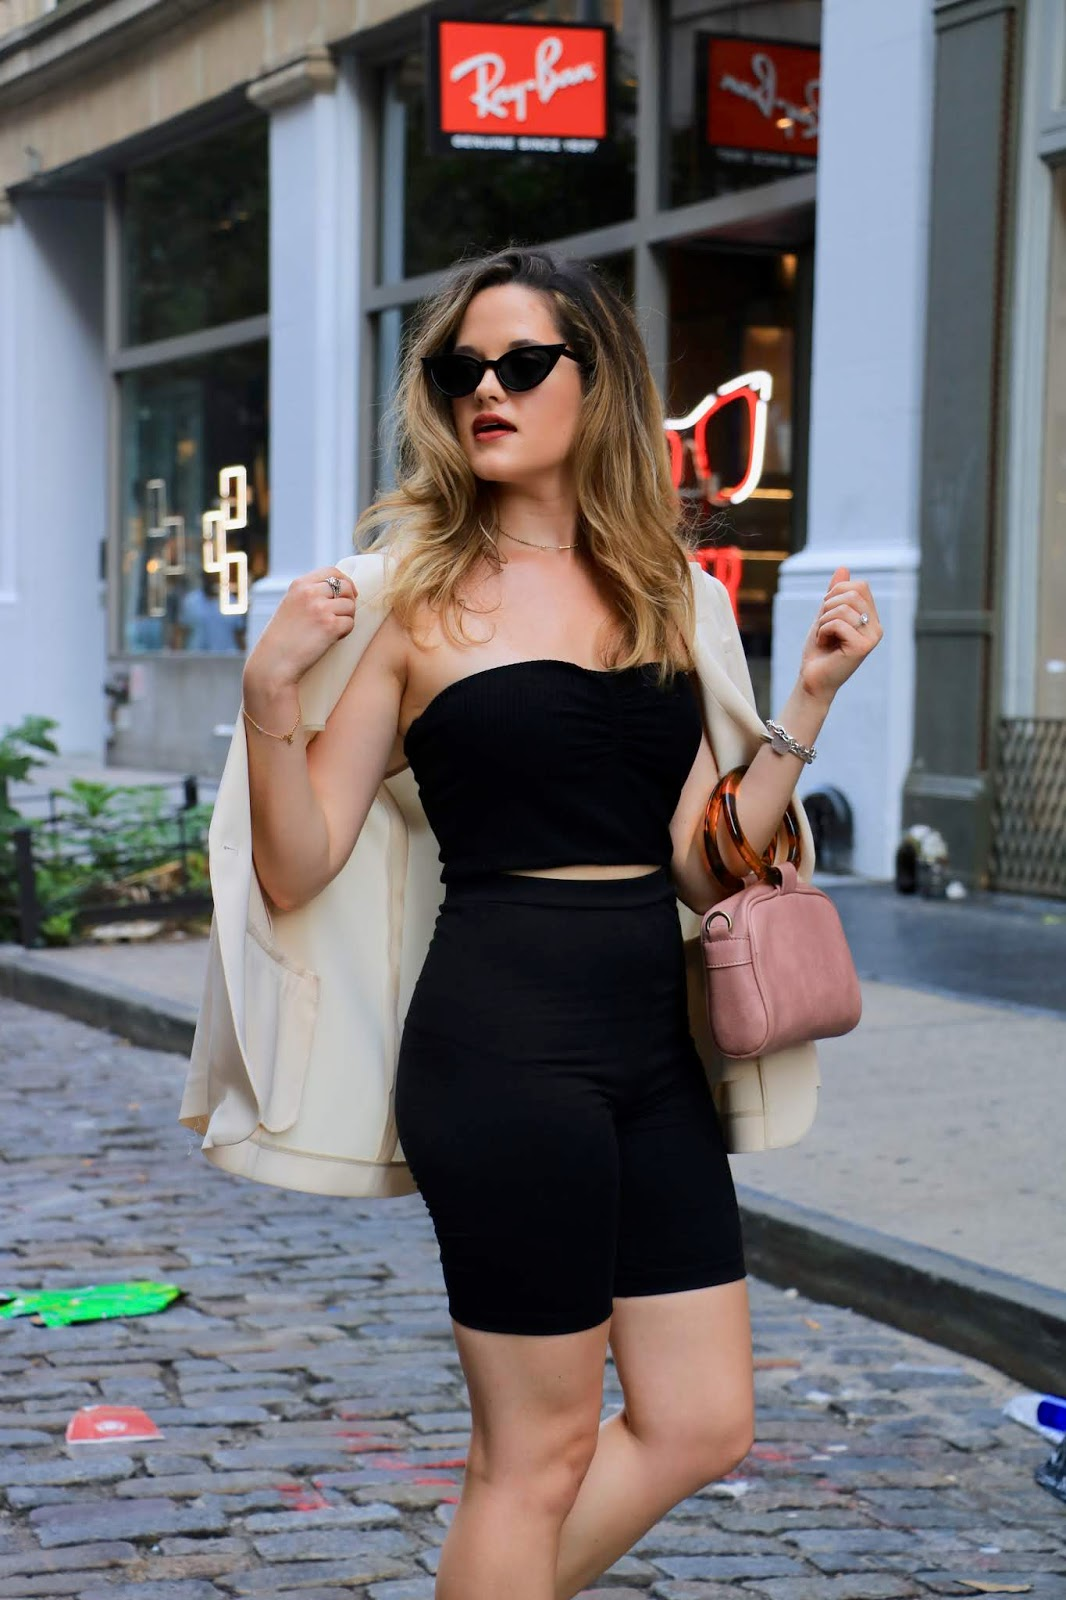 Nyc fashion blogger Kathleen Harper showing a chic way to wear bike shorts.